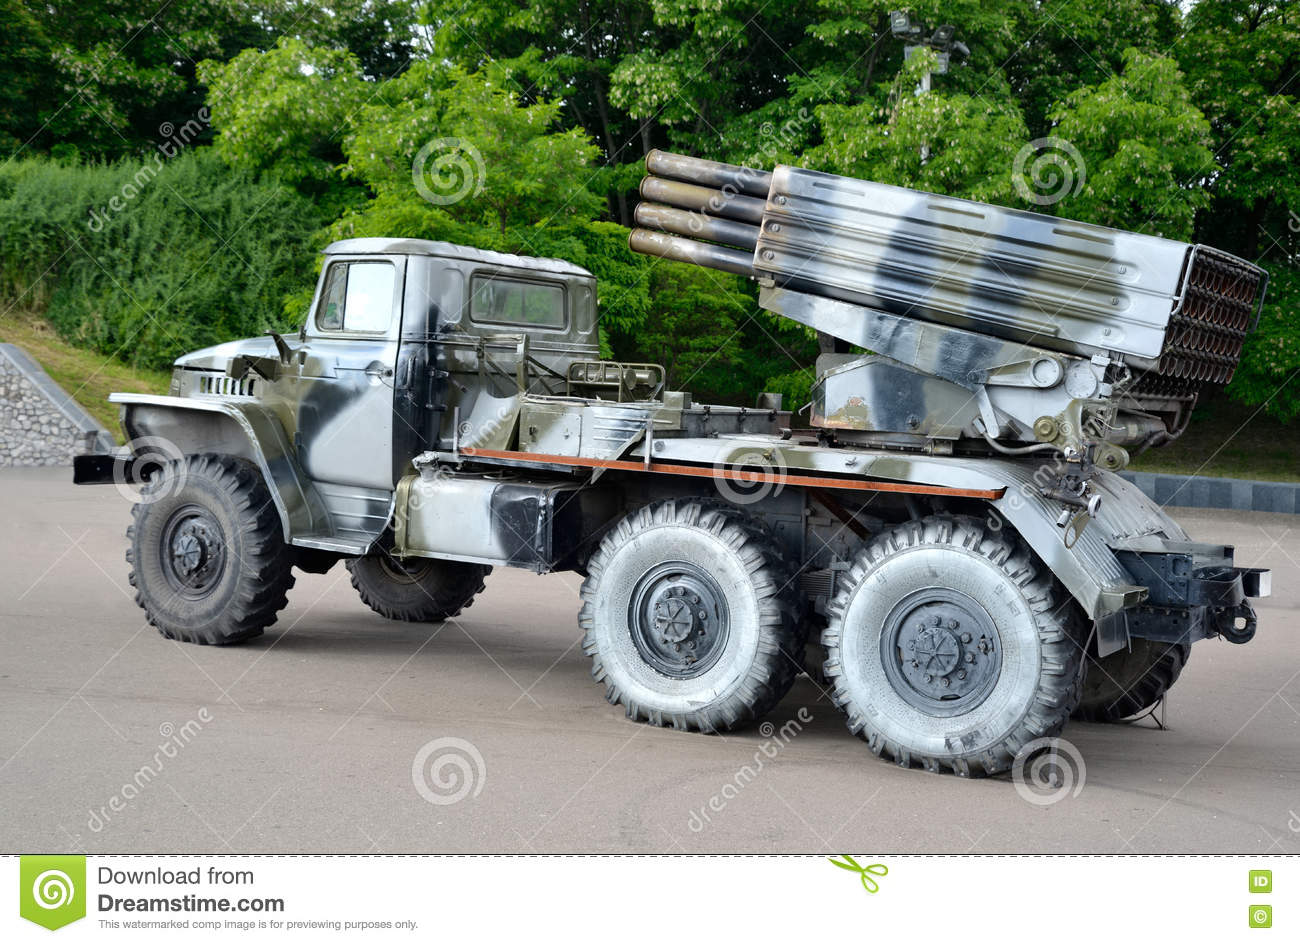 russian combat rocket launch vehicle bm 21 hail stock image image 73381521. Black Bedroom Furniture Sets. Home Design Ideas